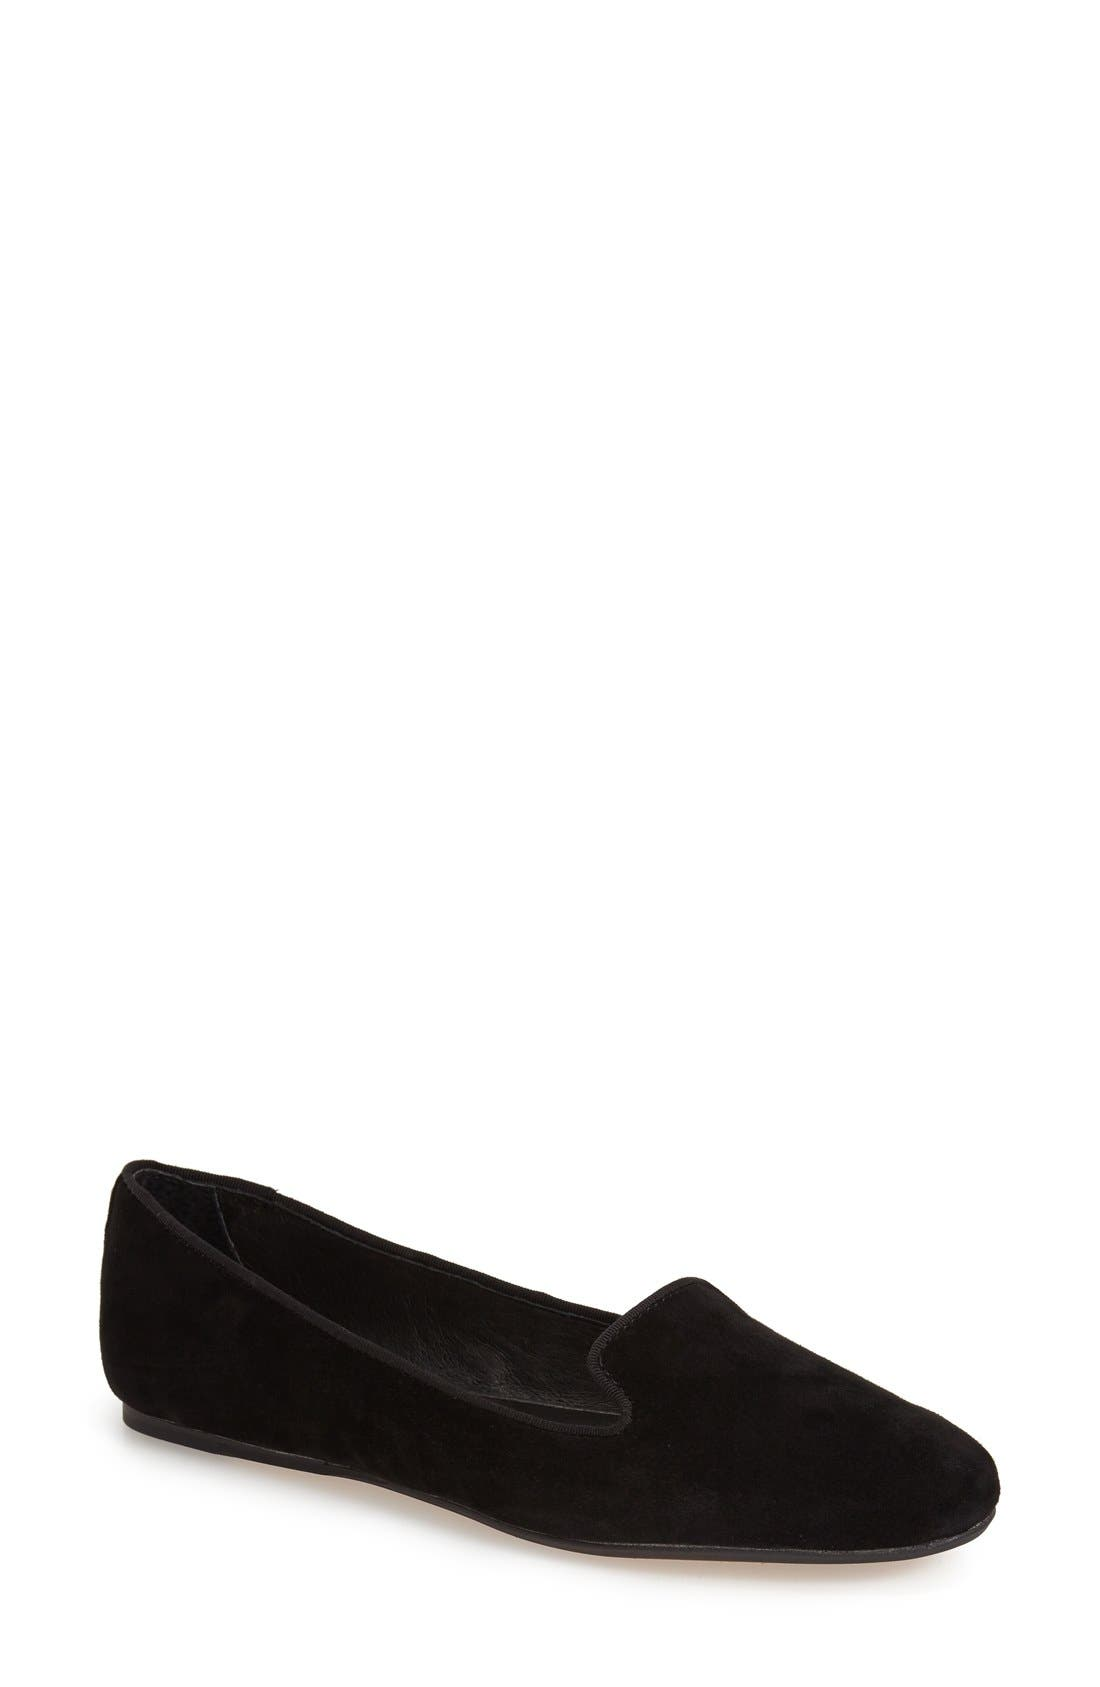 'Brannon' Smoking Loafer,                         Main,                         color, 001